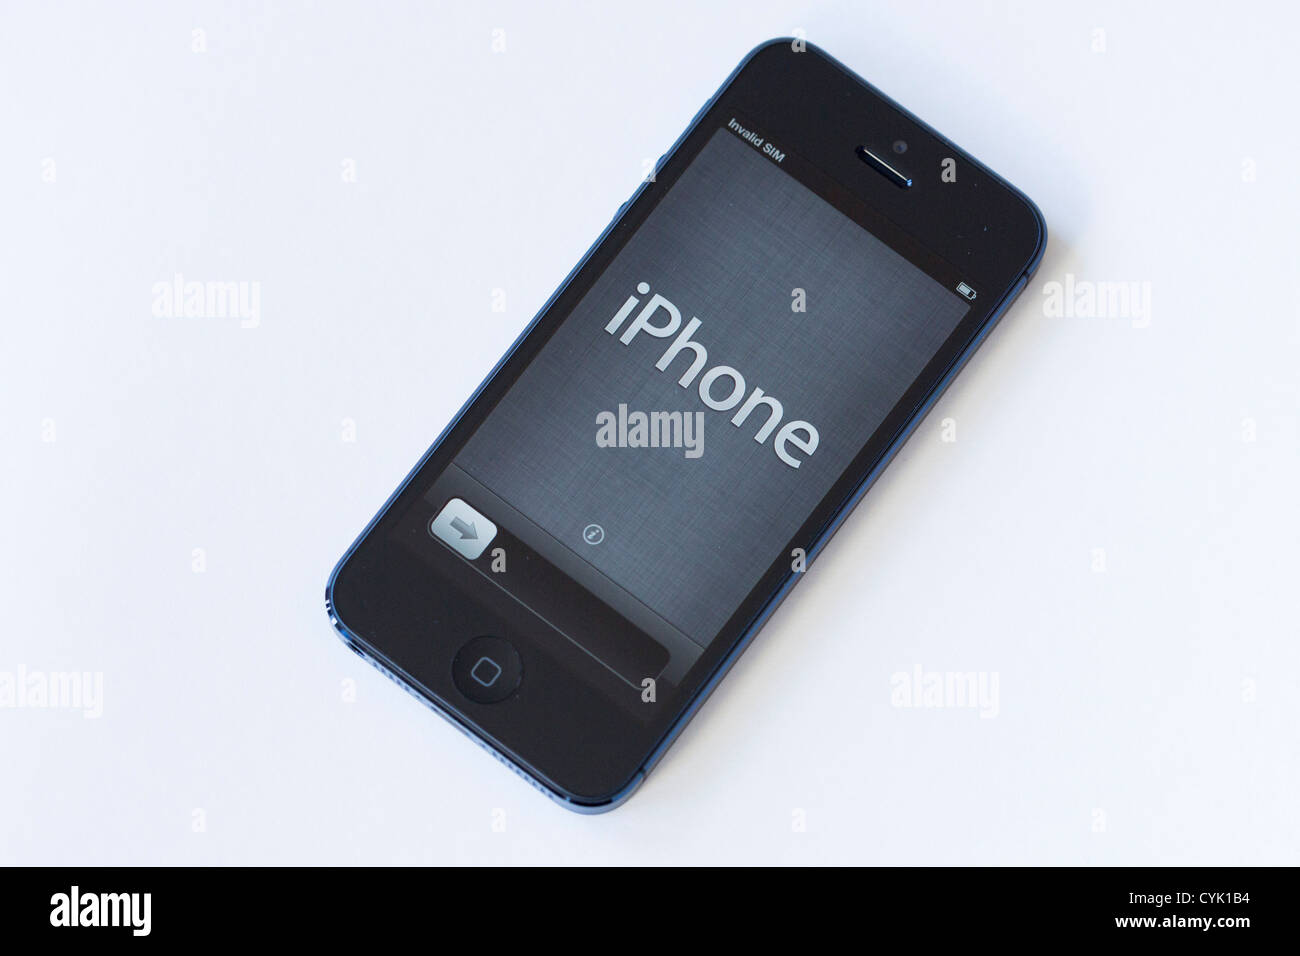 The Apple iPhone 5. - Stock Image